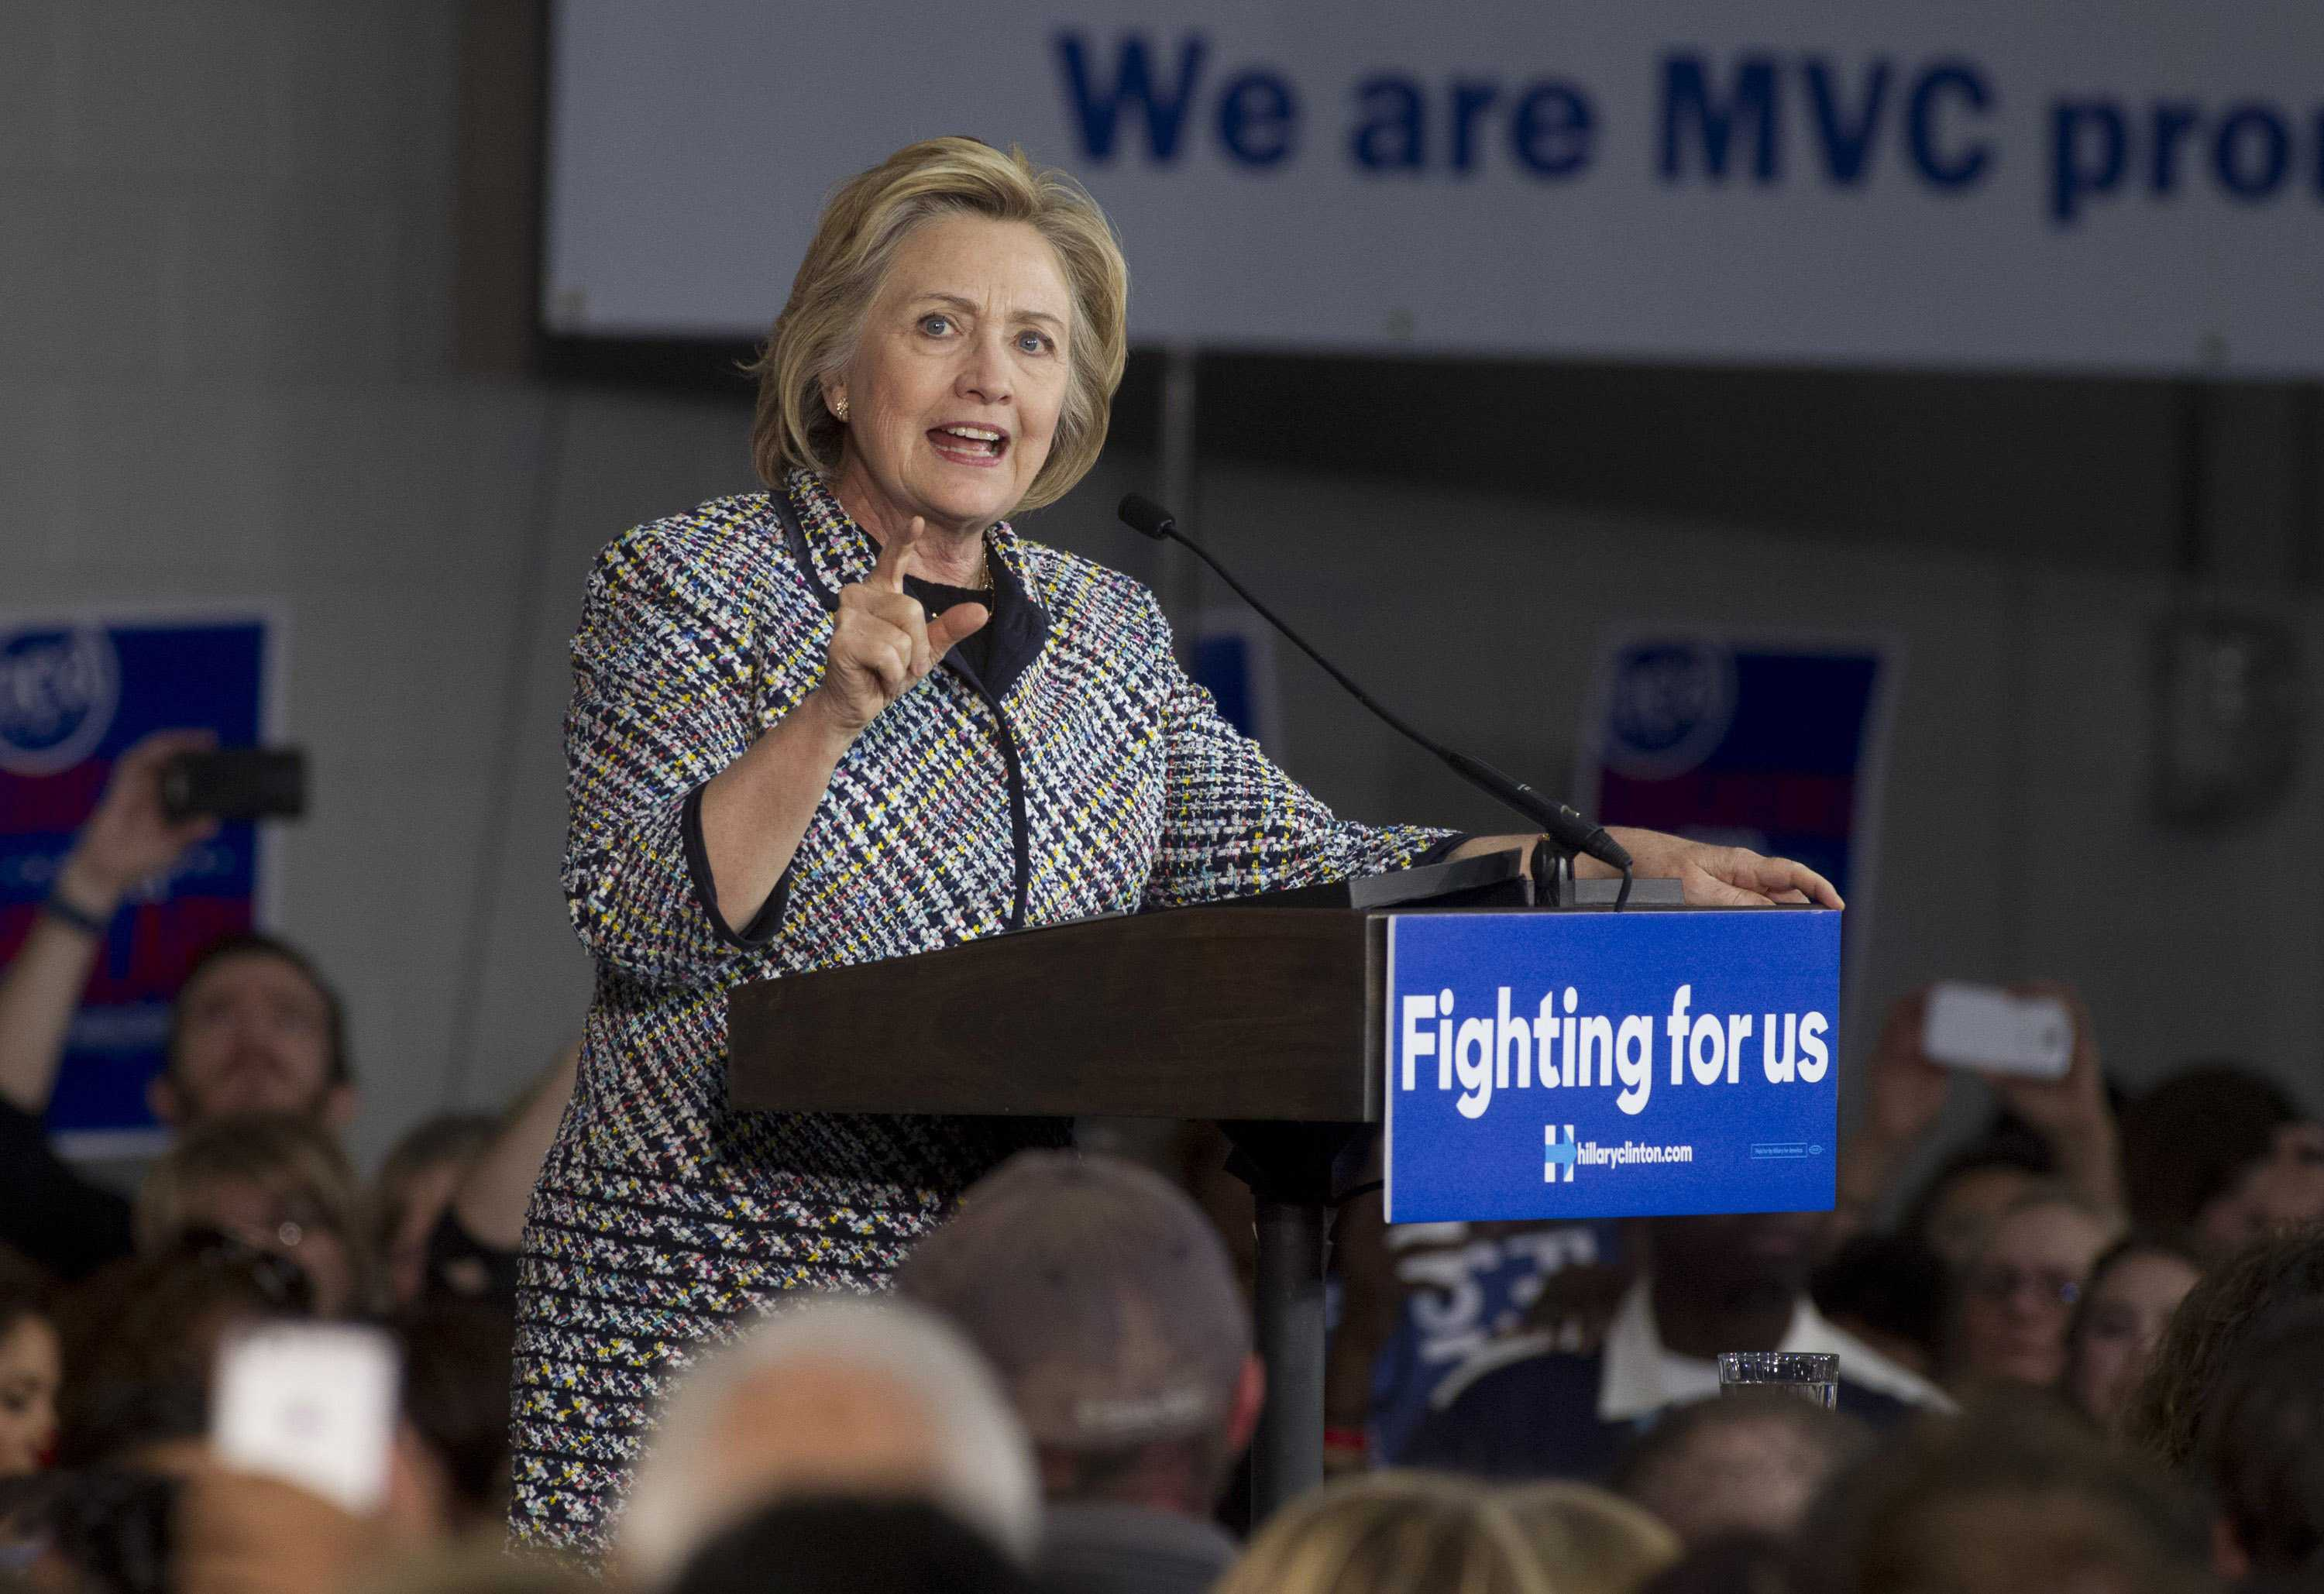 Democratic presidential candidate Hillary Clinton talks to supporters in Dallas at Mountain View College on Tuesday, Nov. 17, 2015. (Joyce Marshall/Fort Worth Star-Telegram/TNS)